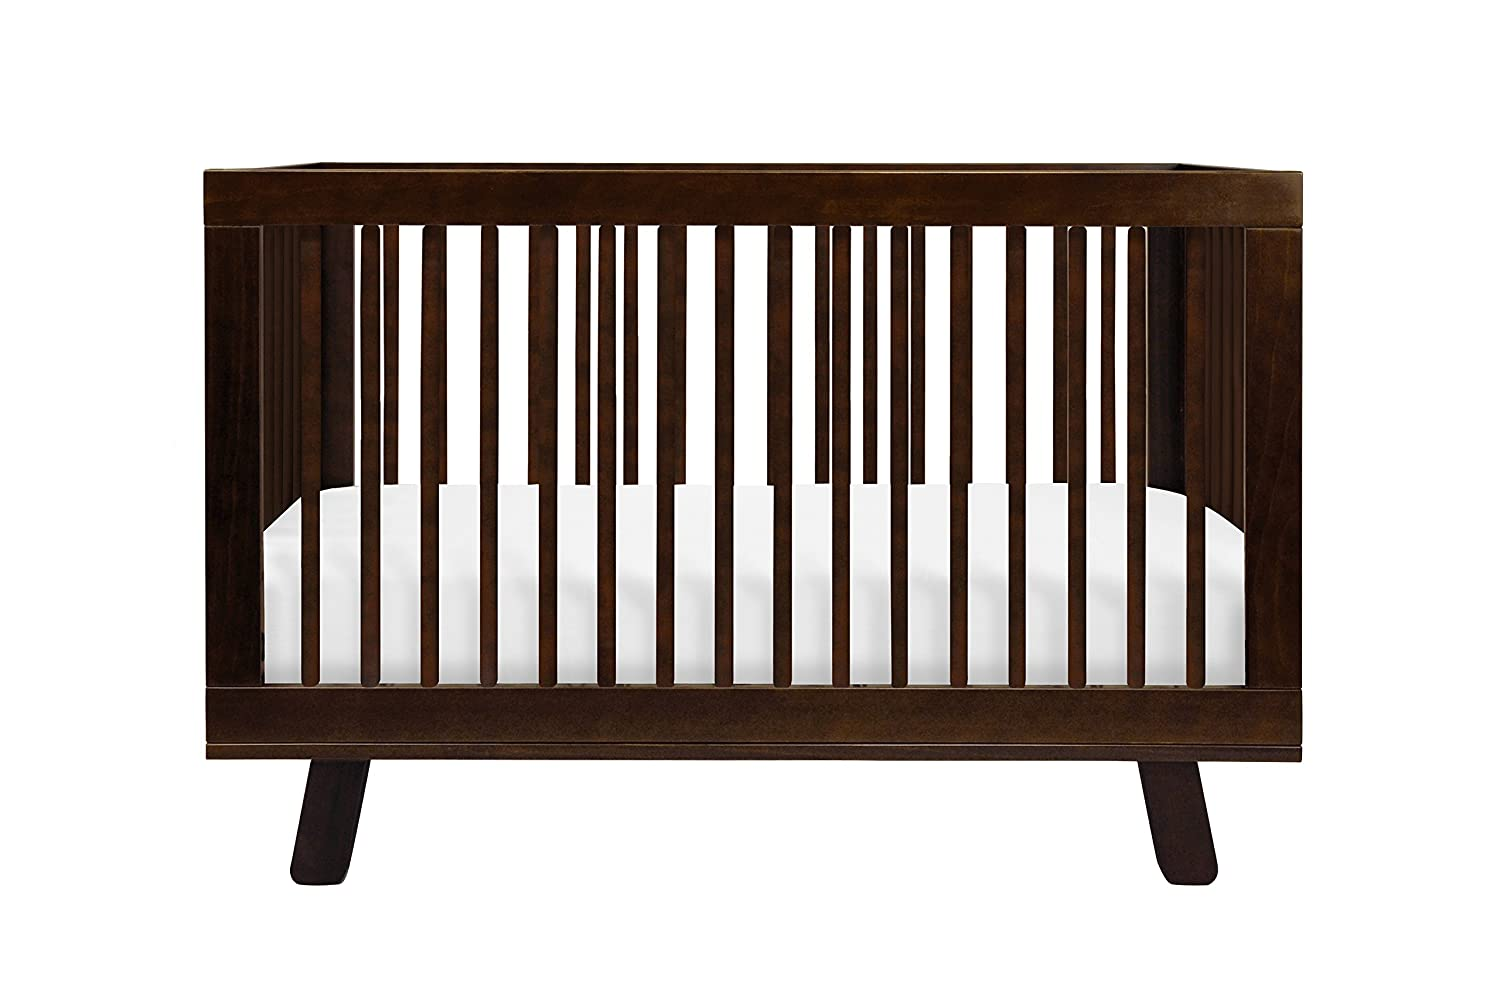 Amazon com babyletto hudson 3 in 1 convertible crib with toddler bed conversion kit espresso babyletto hudson brown baby